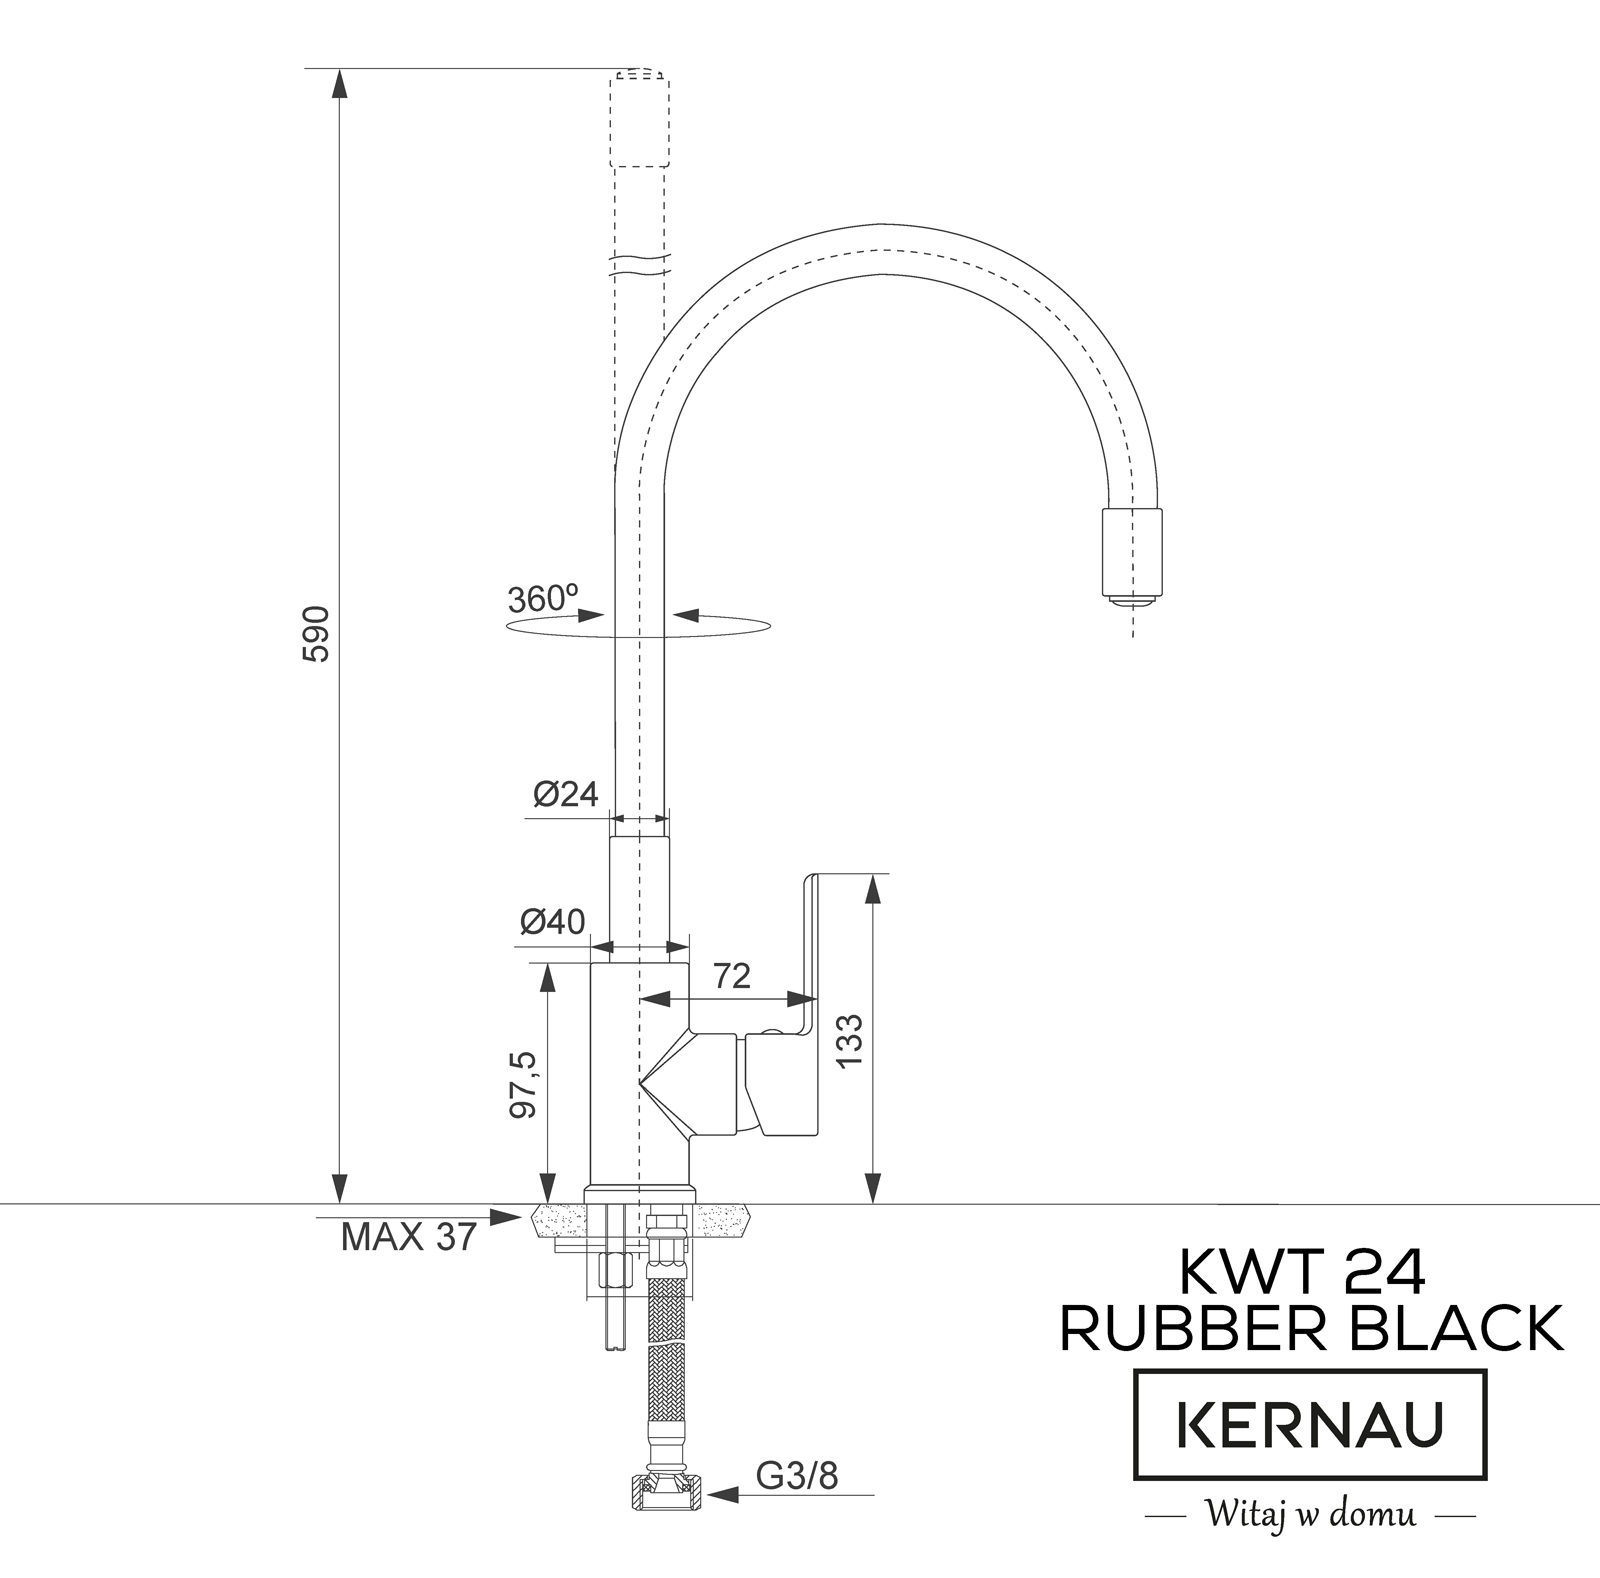 KWT 24 RUBBER BLACK